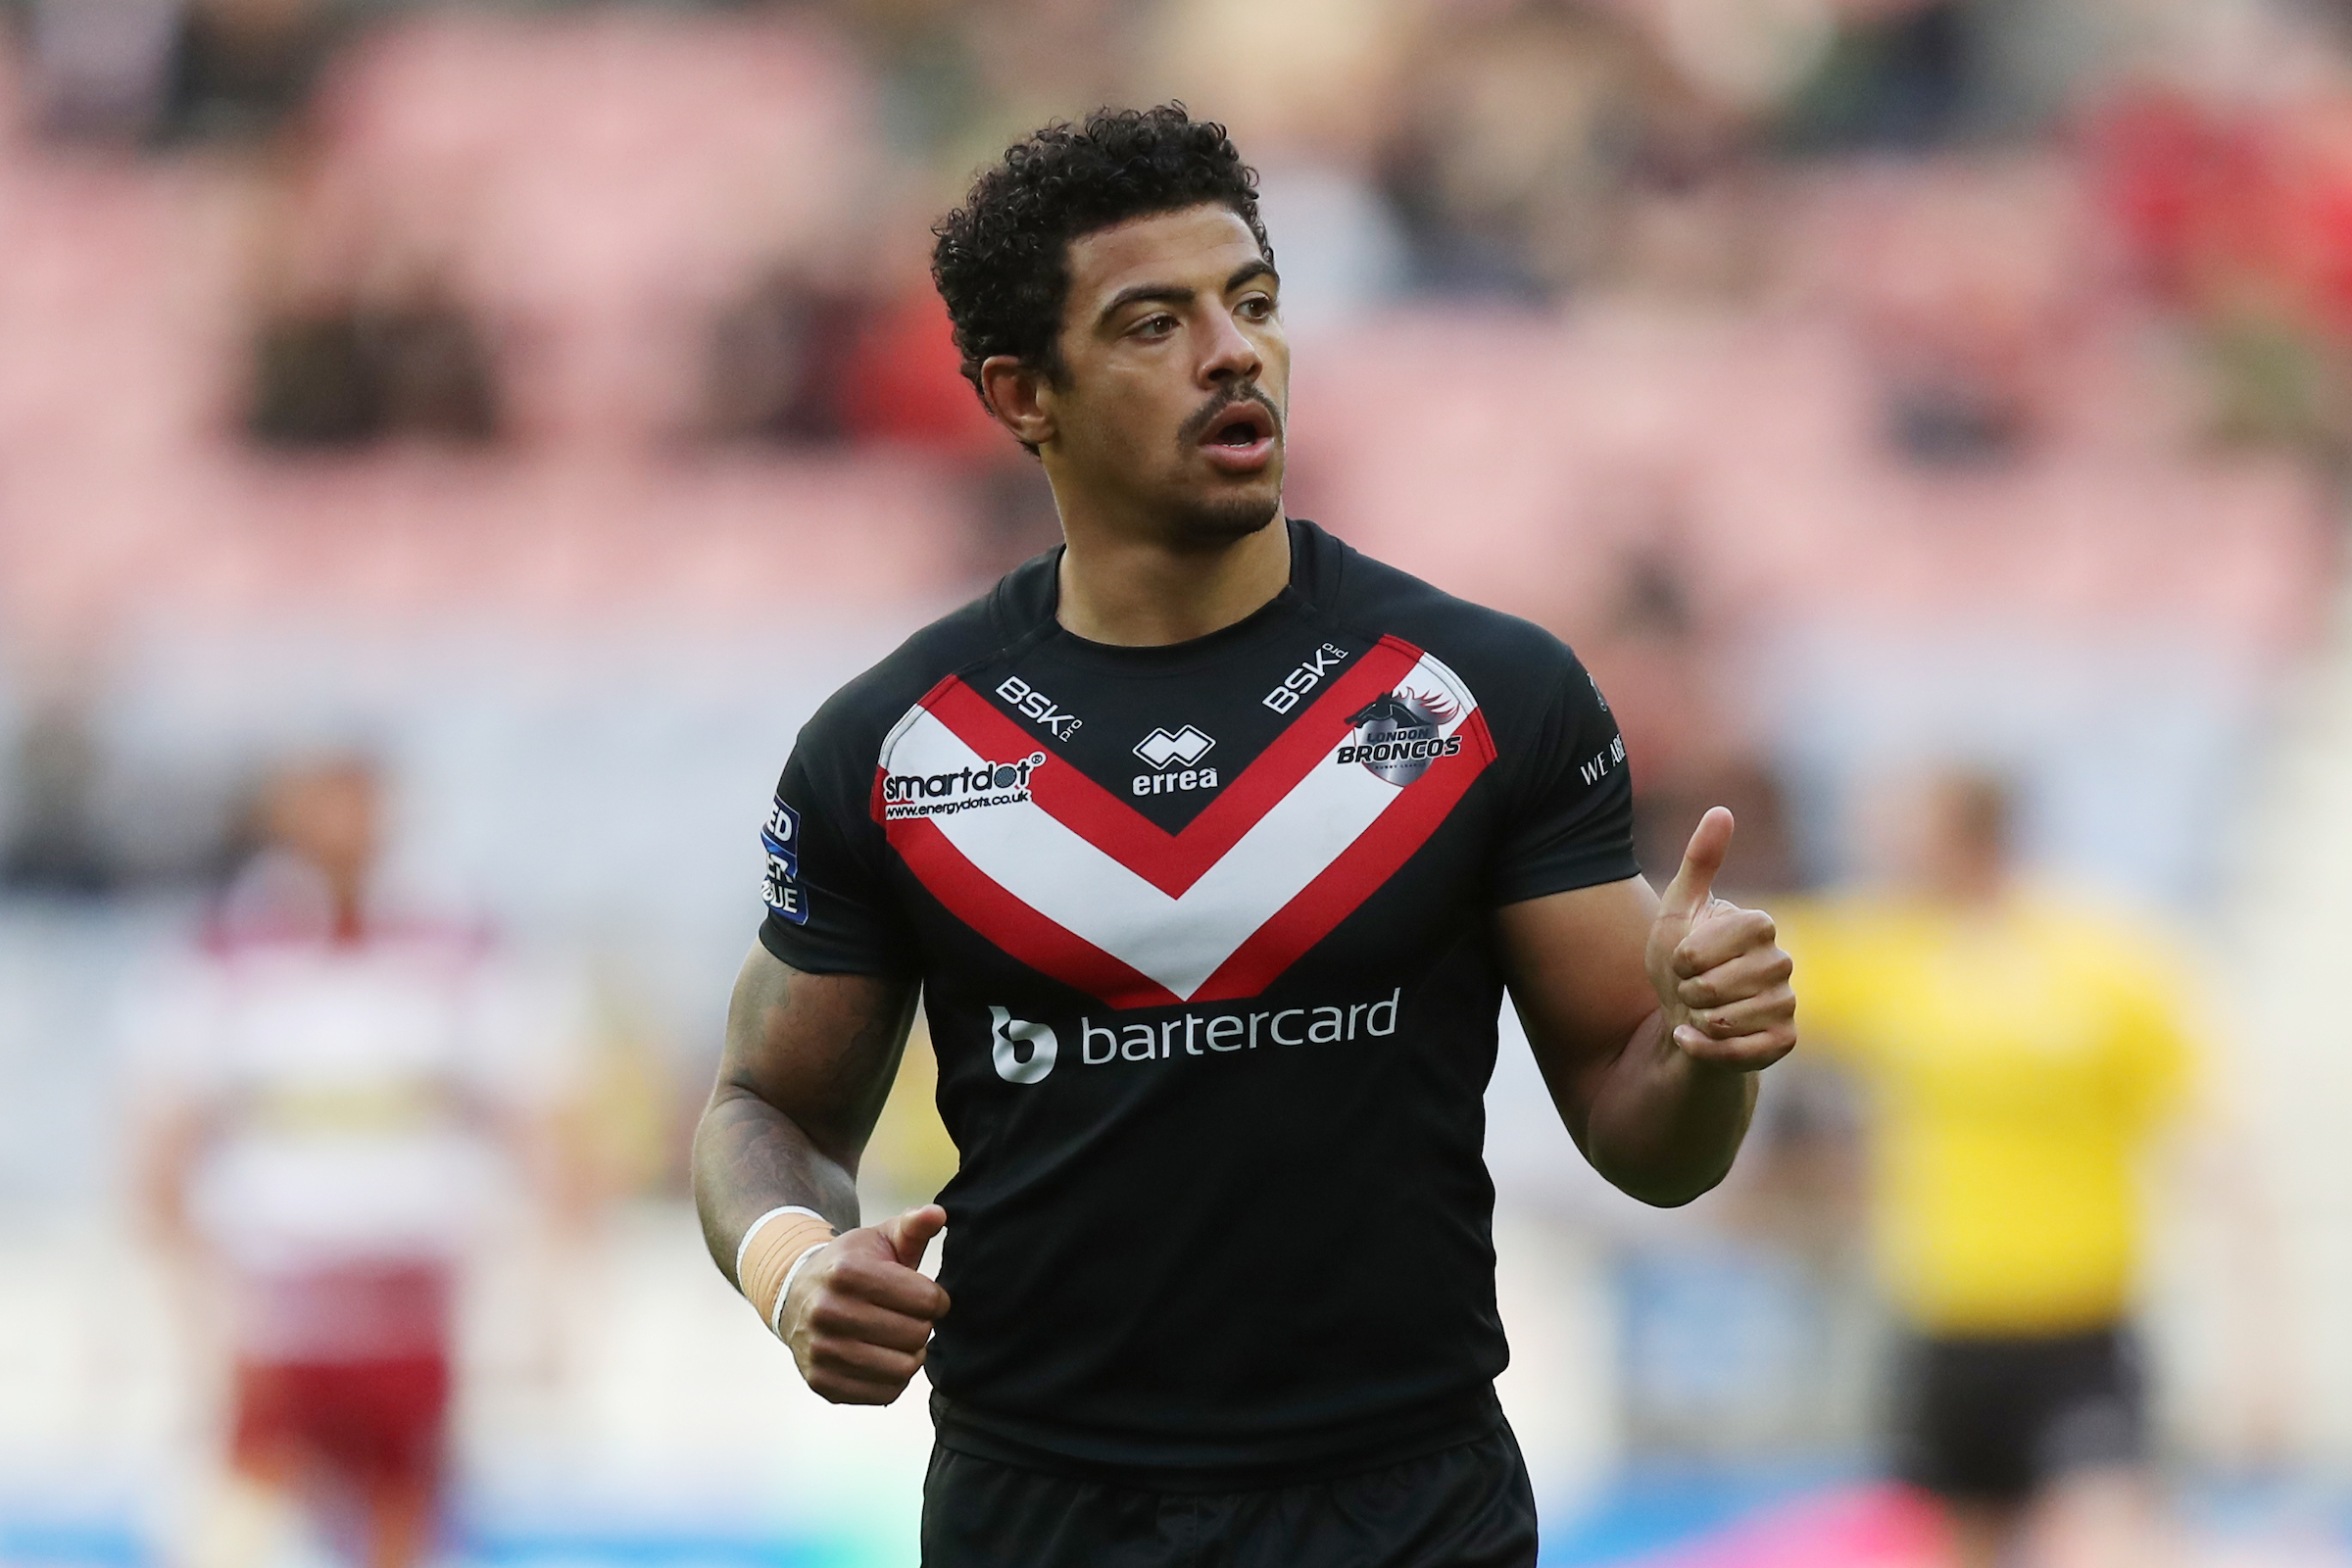 London Broncos fronted up in the second half against Warrington Wolves